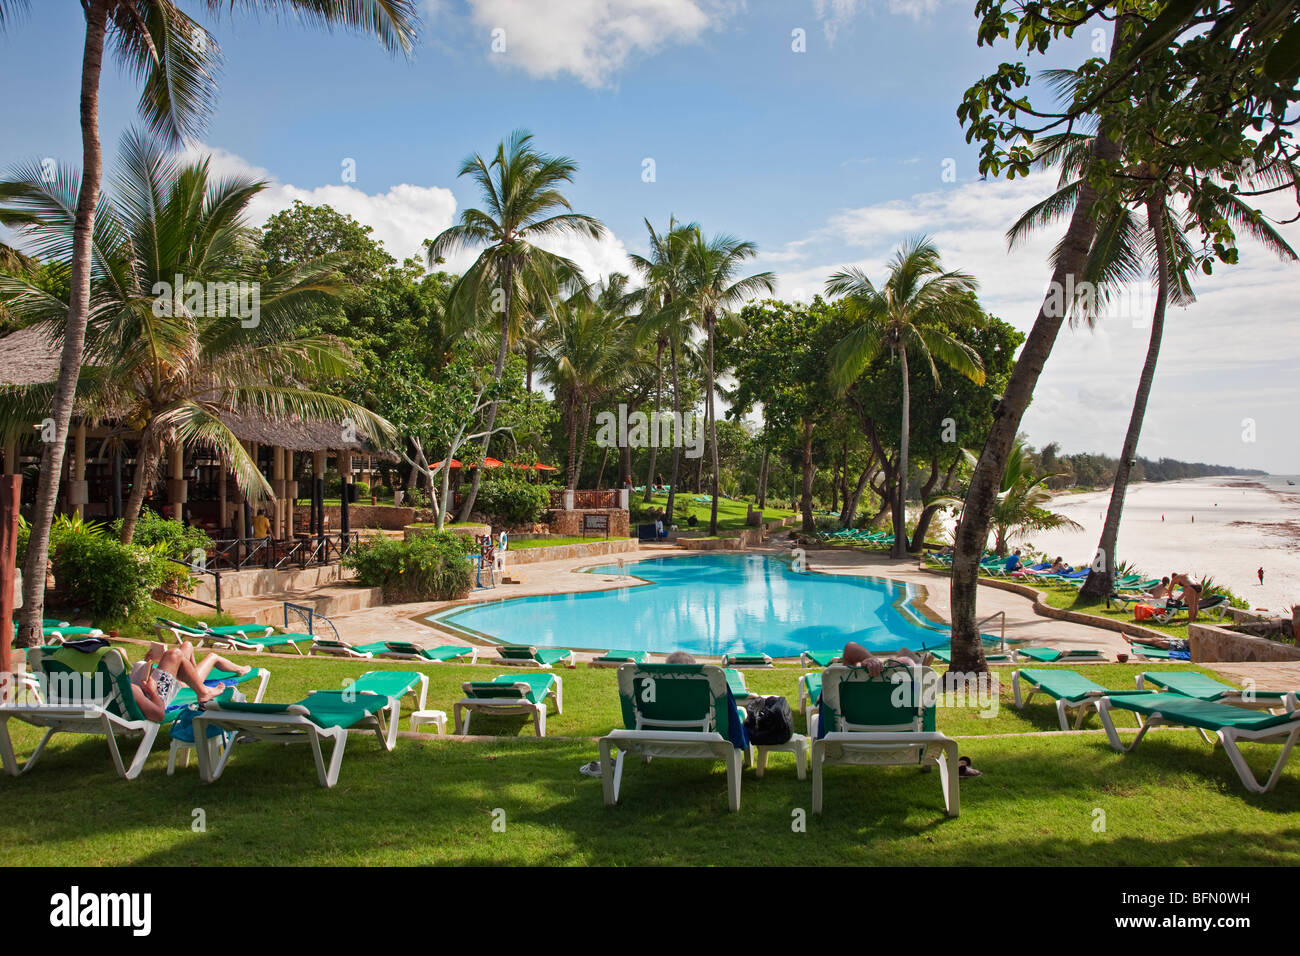 Kenya, Mombasa. The swimming pool of Baobab Resort with the white sands of Diani Beach in the background. - Stock Image